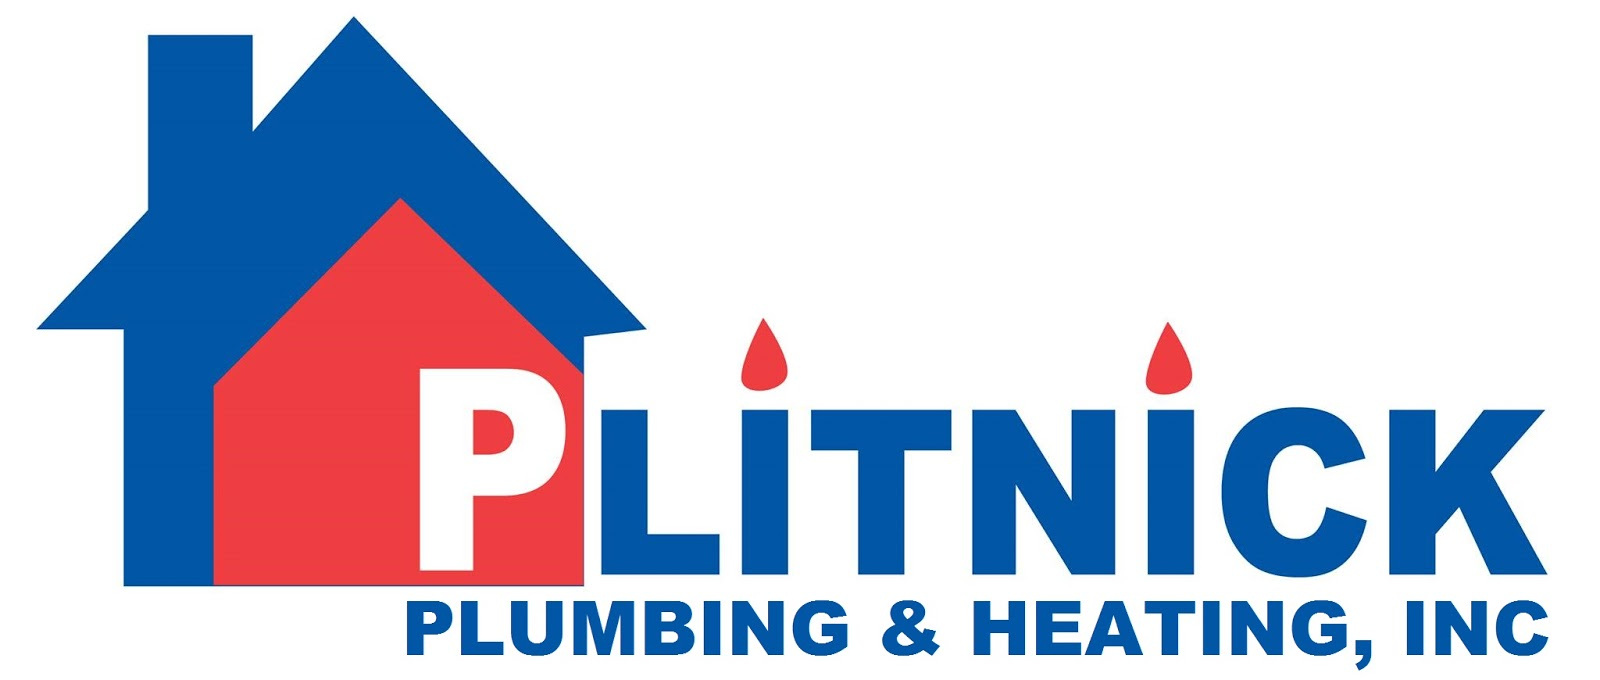 Plitnick Plumbing and Heating